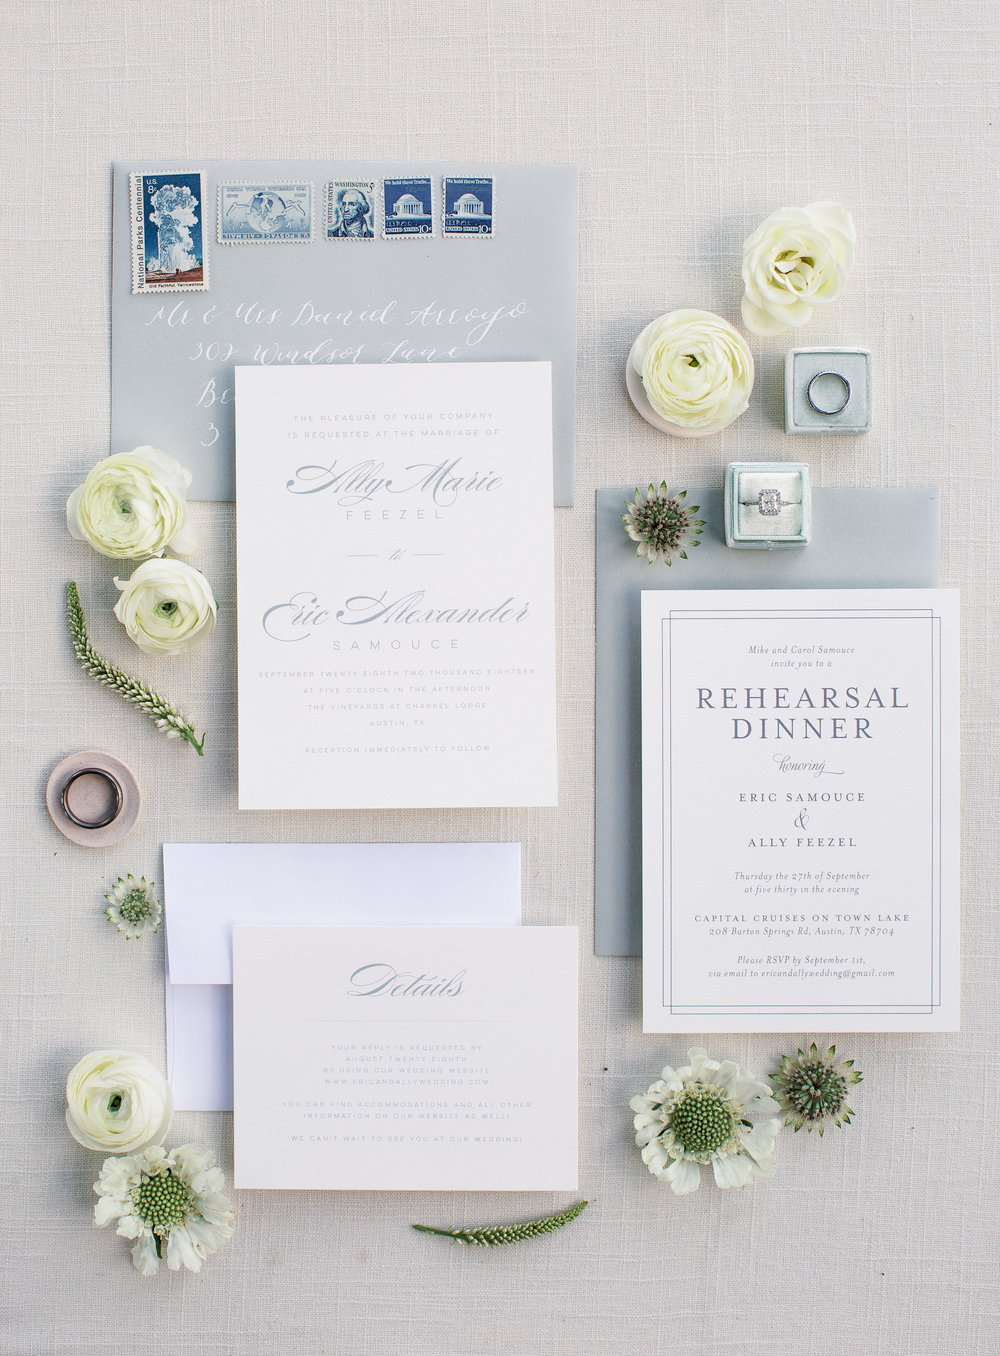 Wedding Day Decor - Hi guys!!! I'm MARRIED! I am so excited to be back and to share all the decor details of our wedding day with you all. So many of you guys have been with me following along this process for the year of planning & I am so excited to finally be able to share this day with you.CLICK HERE TO READ MORE…